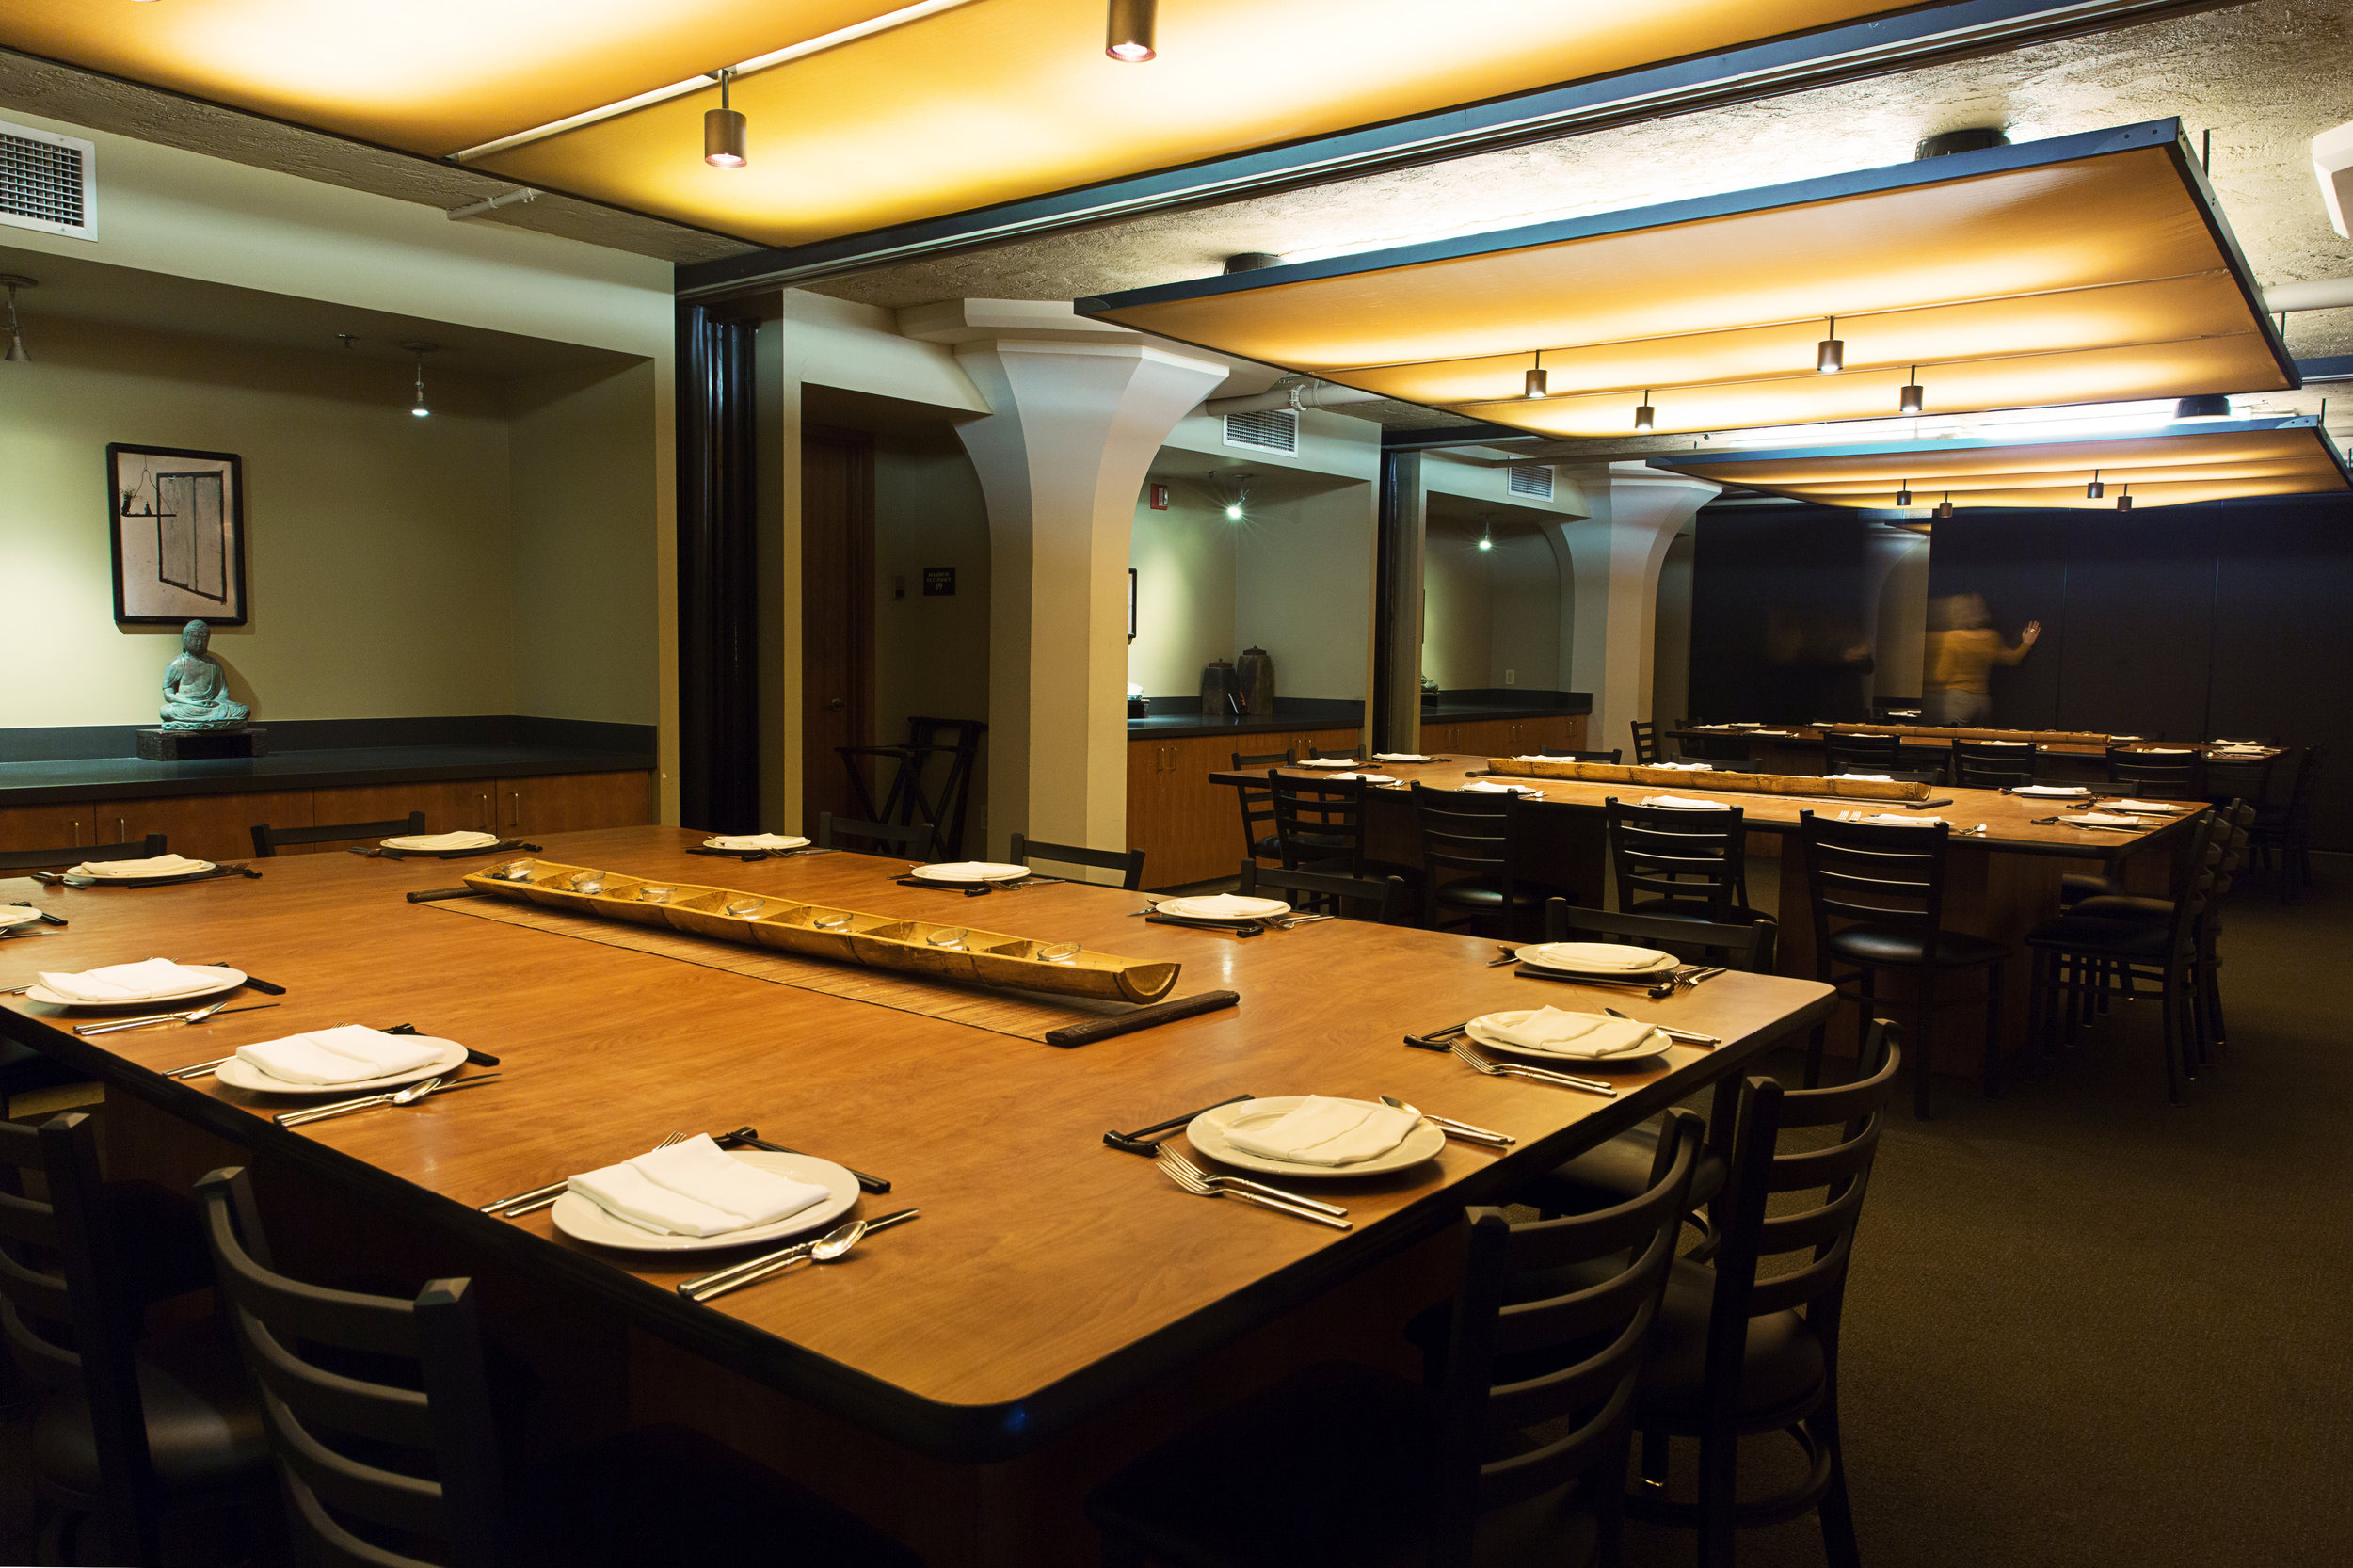 Mezzanine Rooms - Reserve 1, 2, 3, or 4 rooms based on your needs1 Mezzanine Room = 16 seated 2 Mezzanine Rooms = 32 seated | 25 standing3 Mezzanine Rooms = 48 seated | 45 standing4 Mezzanine Rooms = 64 seated | 55 standing